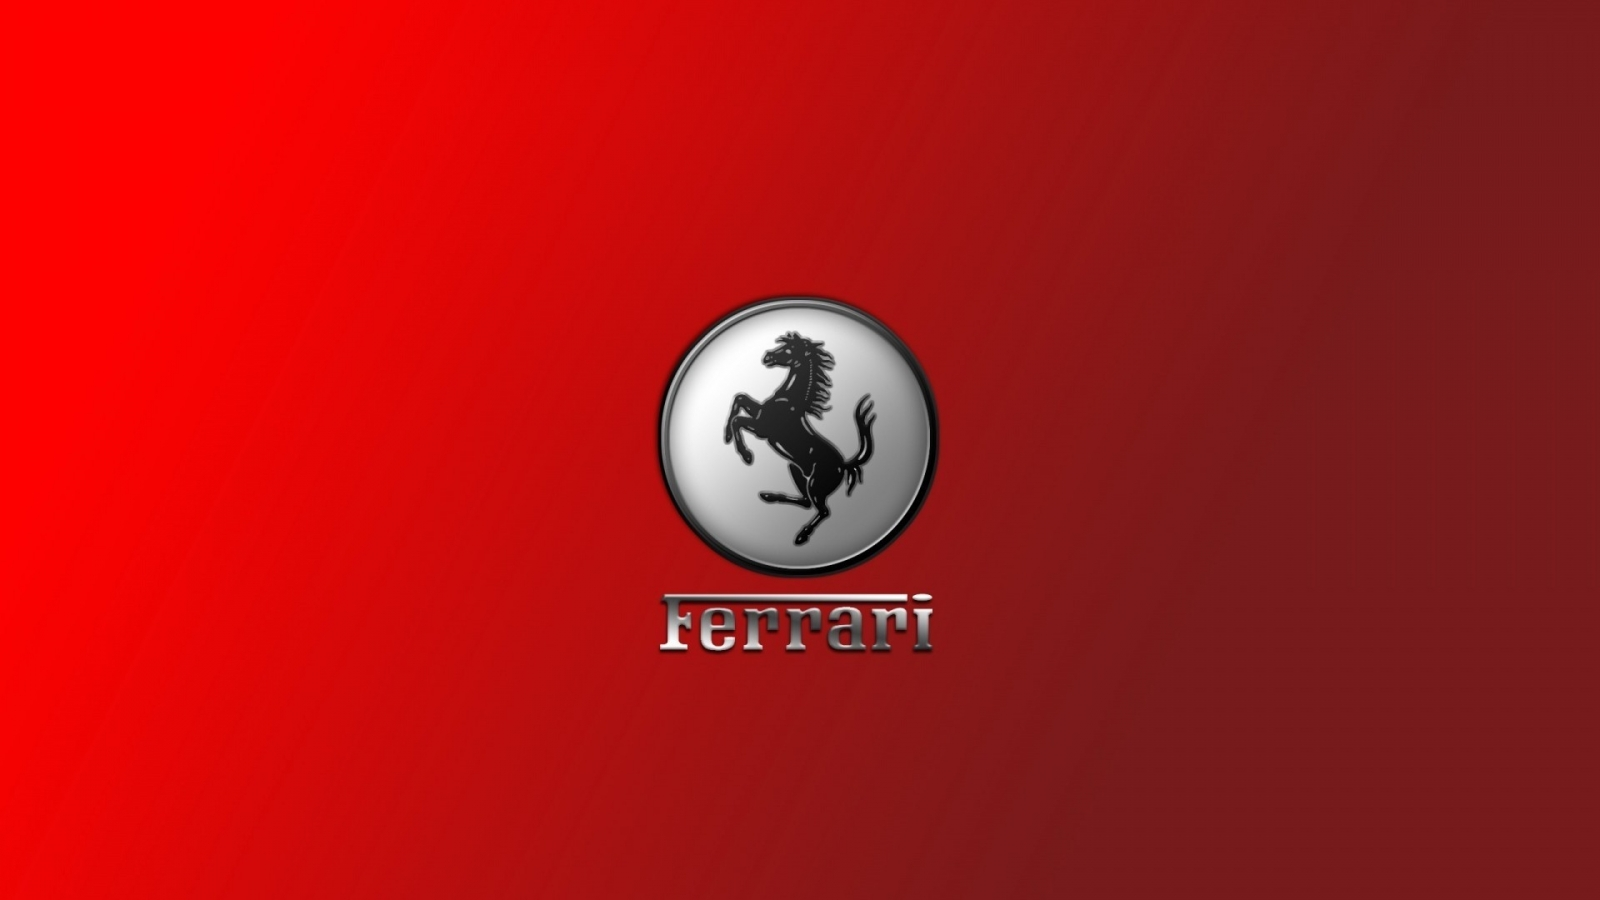 Gorgeous Ferrari Logo for 1600 x 900 HDTV resolution